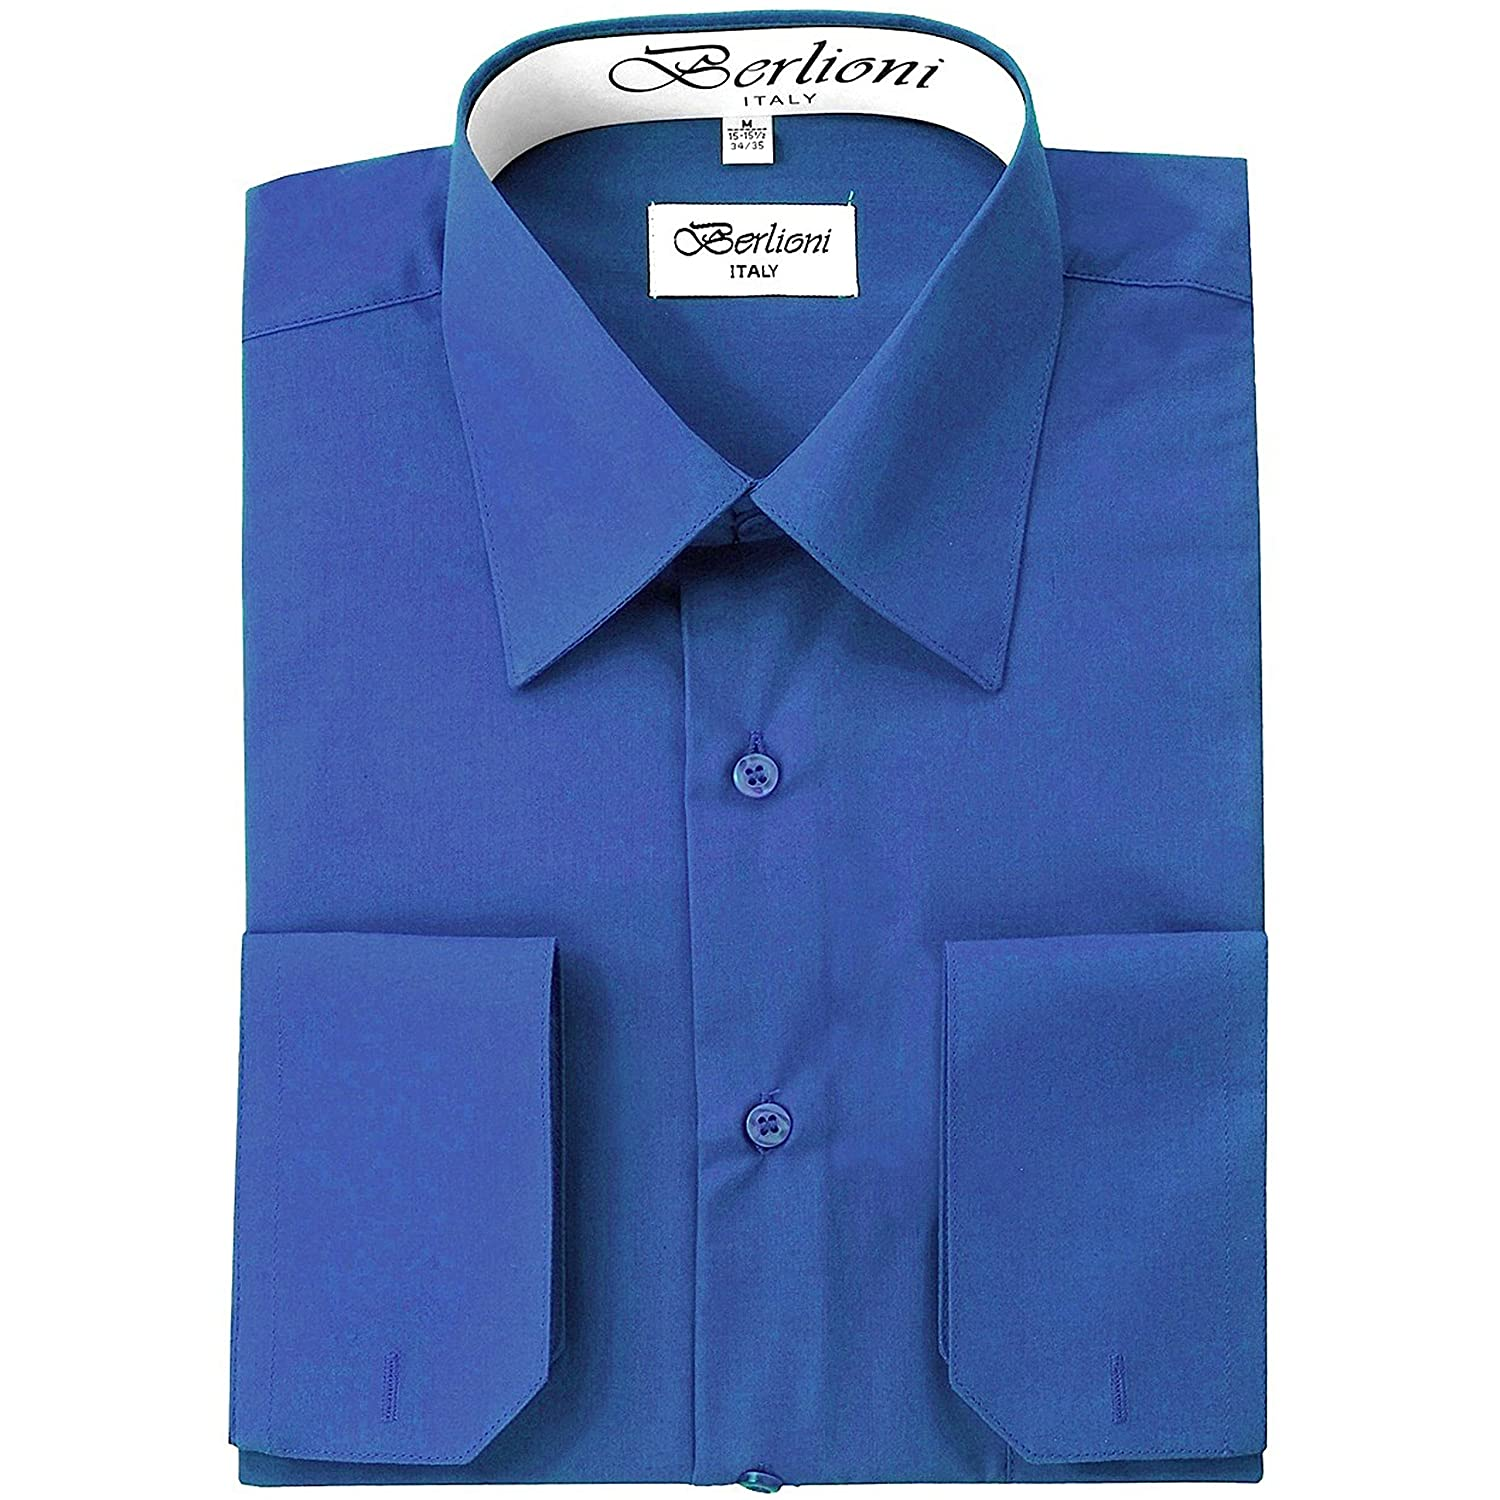 c8ee379d394 Berlioni Men s Dress Shirt - Convertible French Cuffs - Huge Color  Selection at Amazon Men s Clothing store